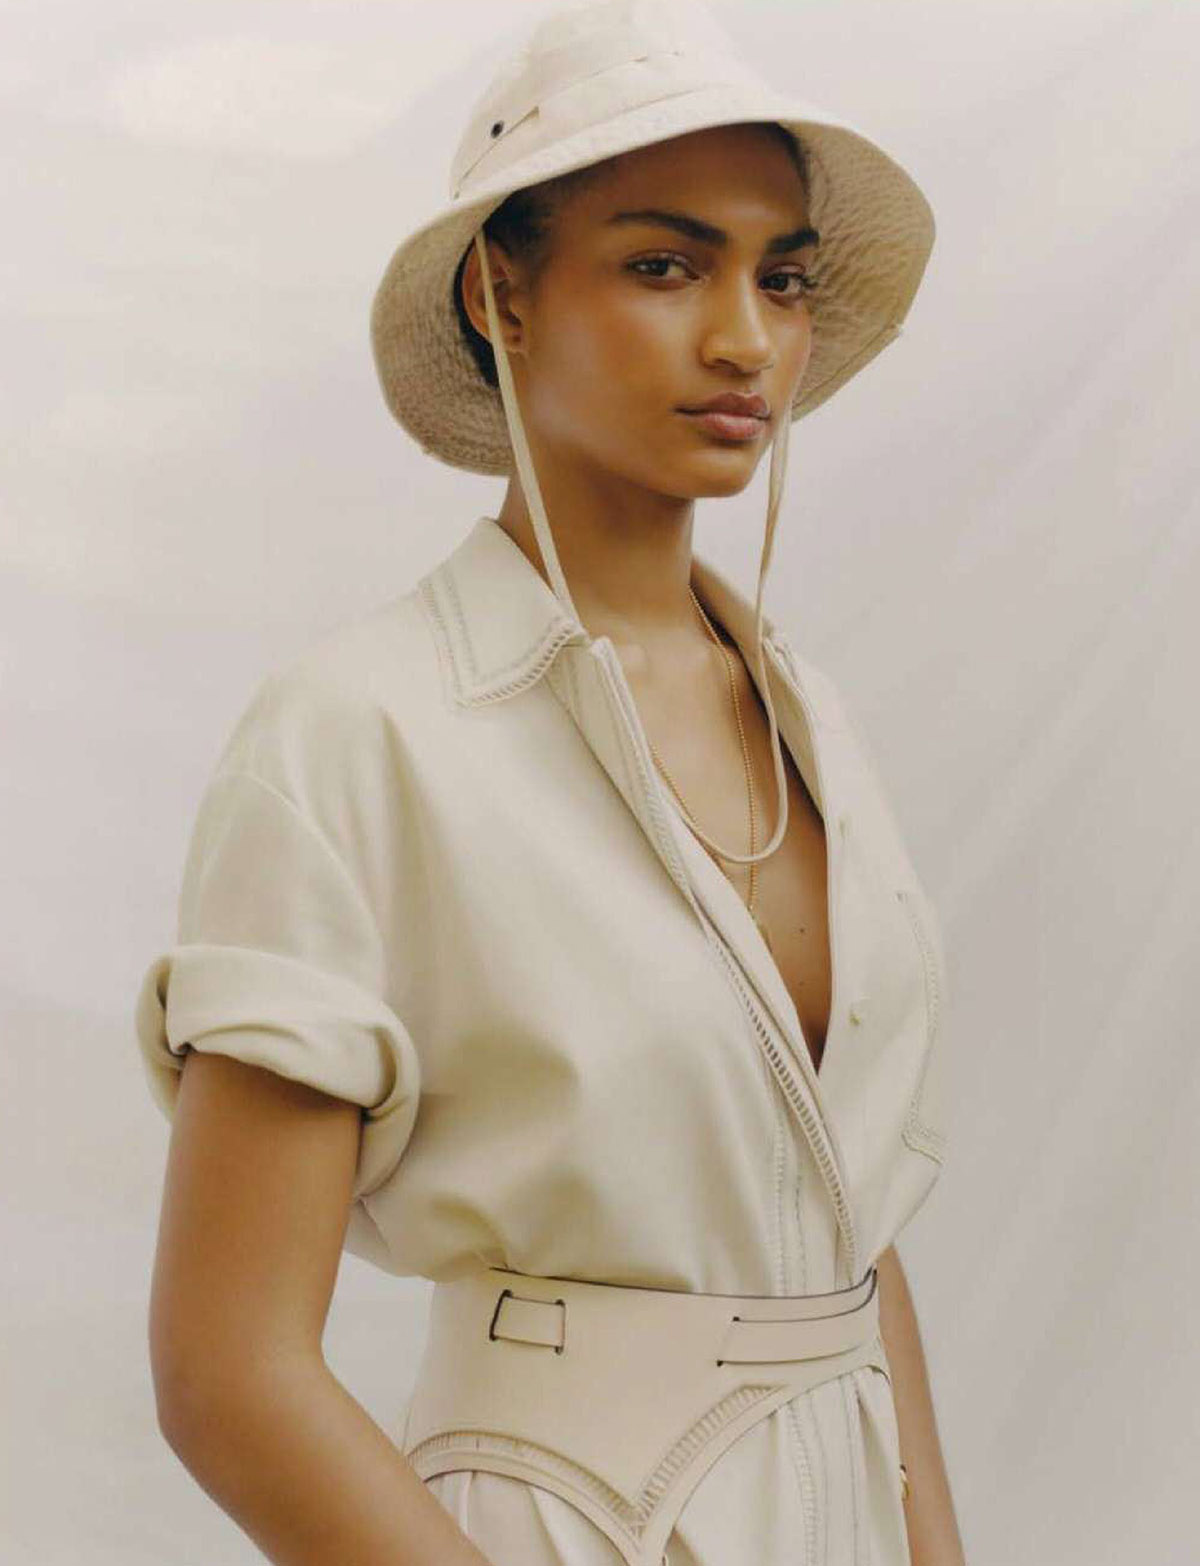 Anyelina Rosa by Peter Ash Lee for Vogue Mexico & Latin America April 2021